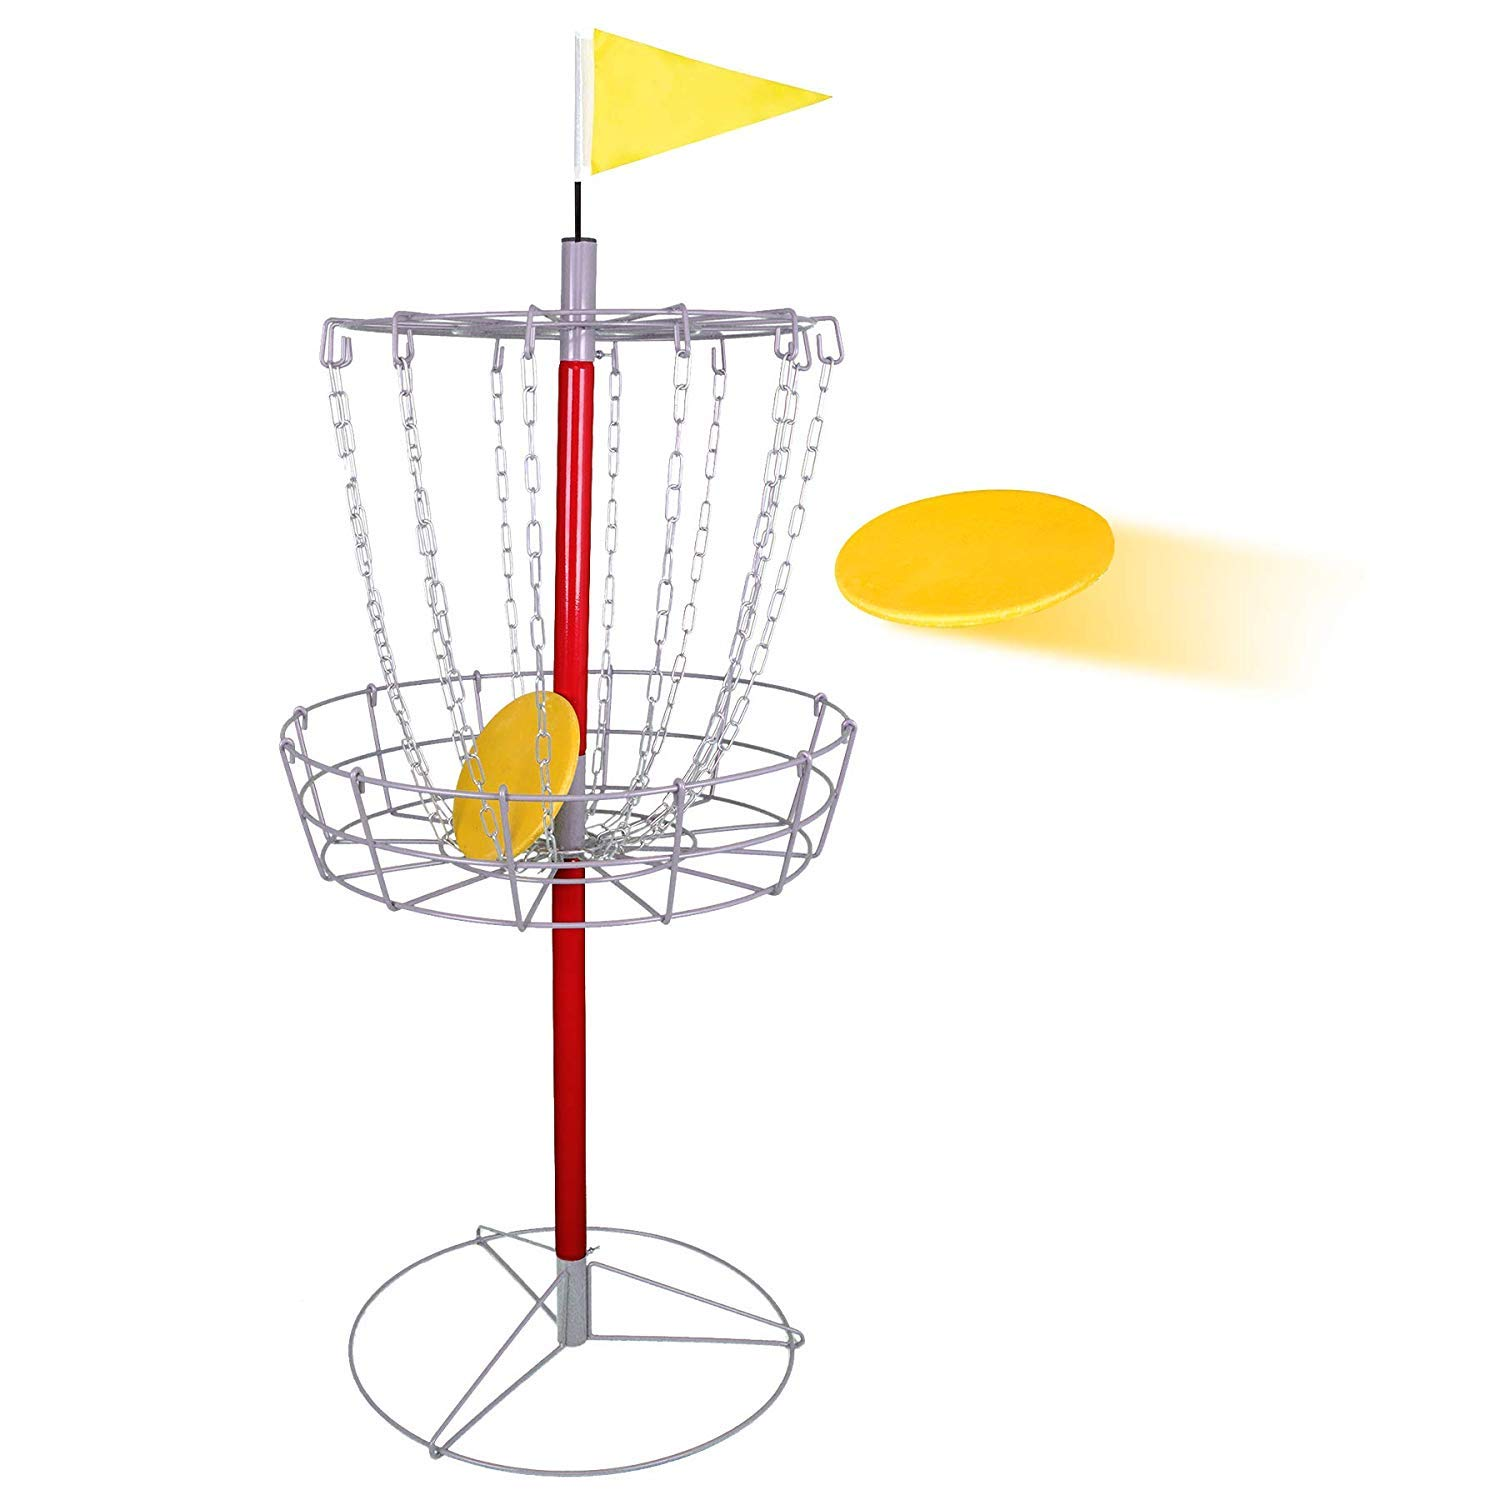 Oteymart Disc Golf Target Basket Goal Metal Portable Heavy Duty Frisbee Target Game Kit with Double Chains,Sport by Oteymart